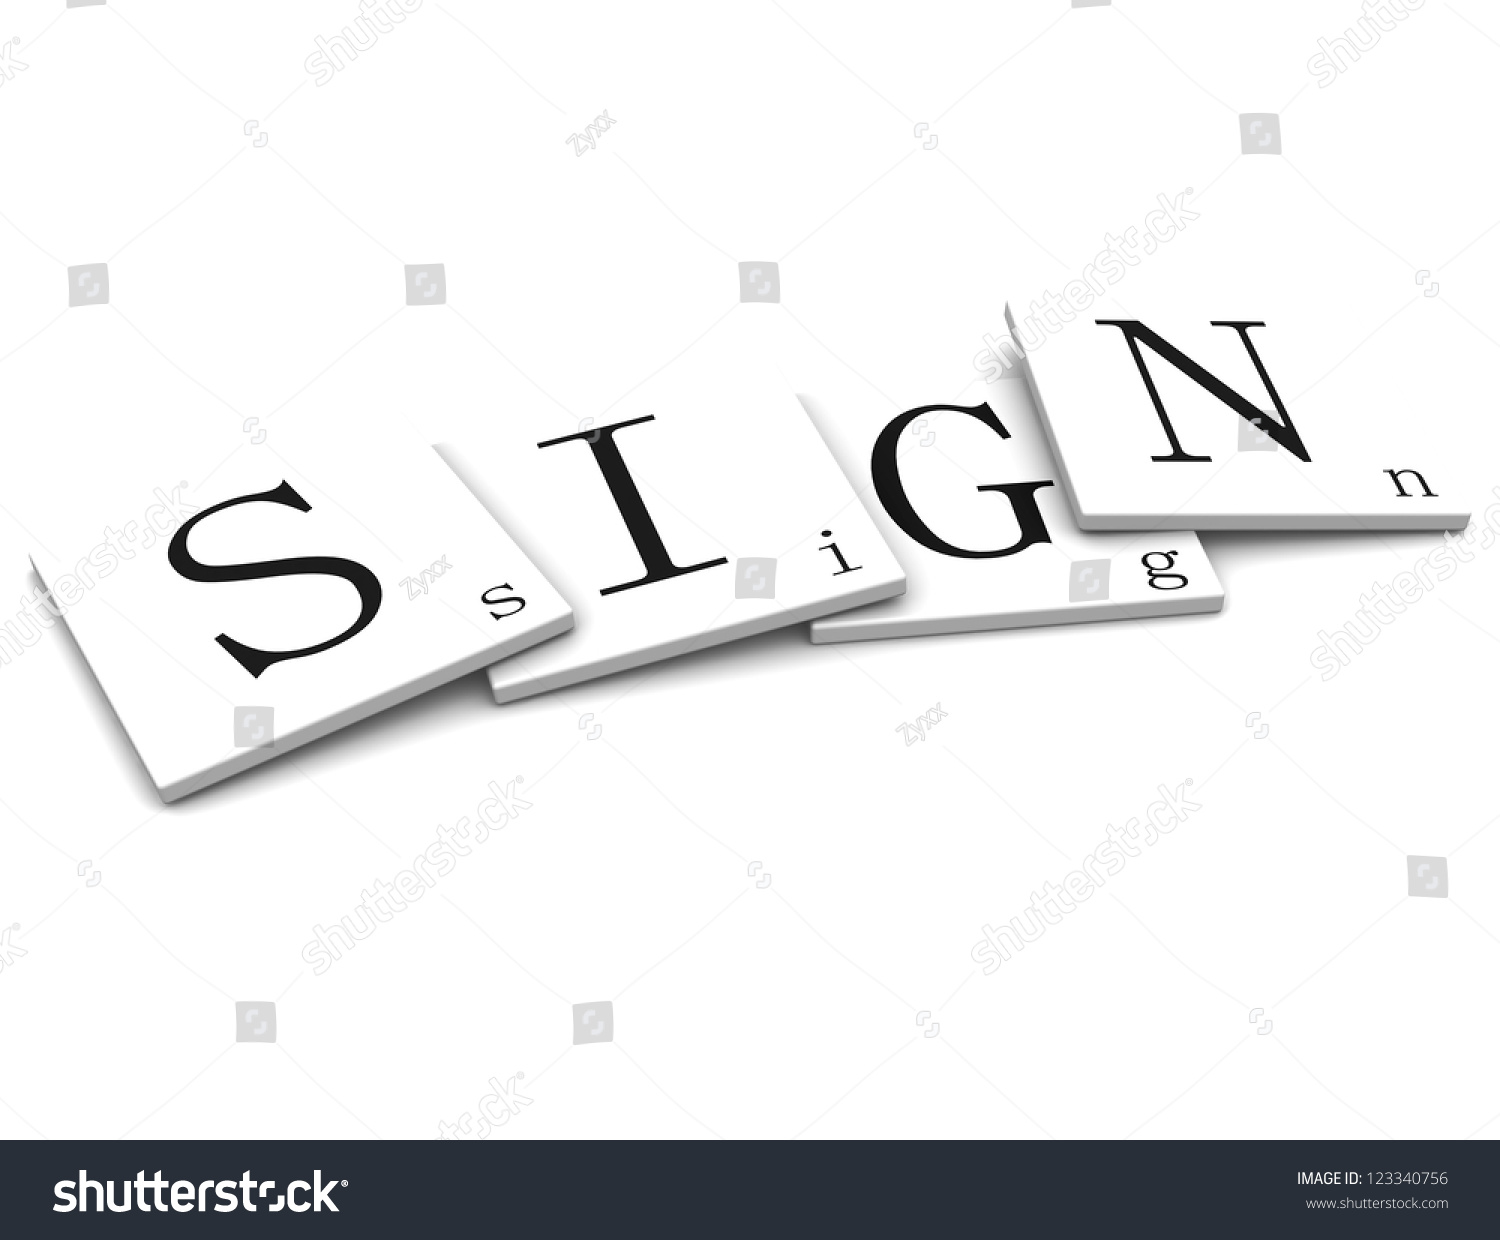 3d Signs Word Sign Stock Photo 123340756  Shutterstock. Moth Signs. Act Fast Signs. Area Darkened Skin Signs. Dollar Sign Signs Of Stroke. Children's Hospital Signs Of Stroke. Traffic Goa Signs Of Stroke. Alone Signs. Highway Sign Signs Of Stroke